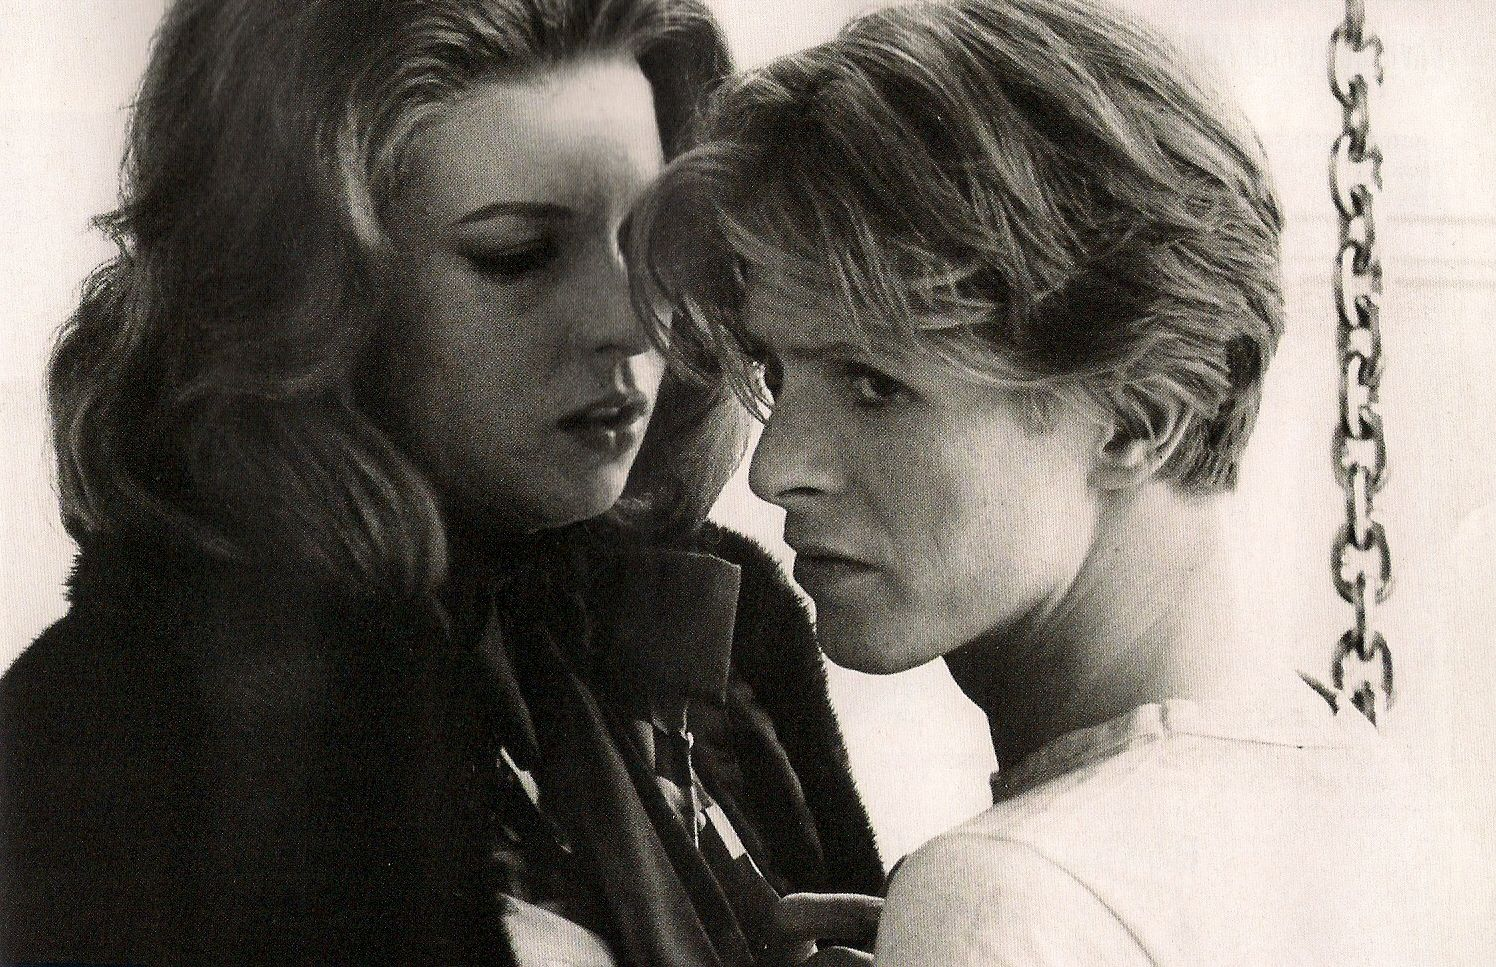 """Behind the scenes of """"The man who fell to earth"""""""